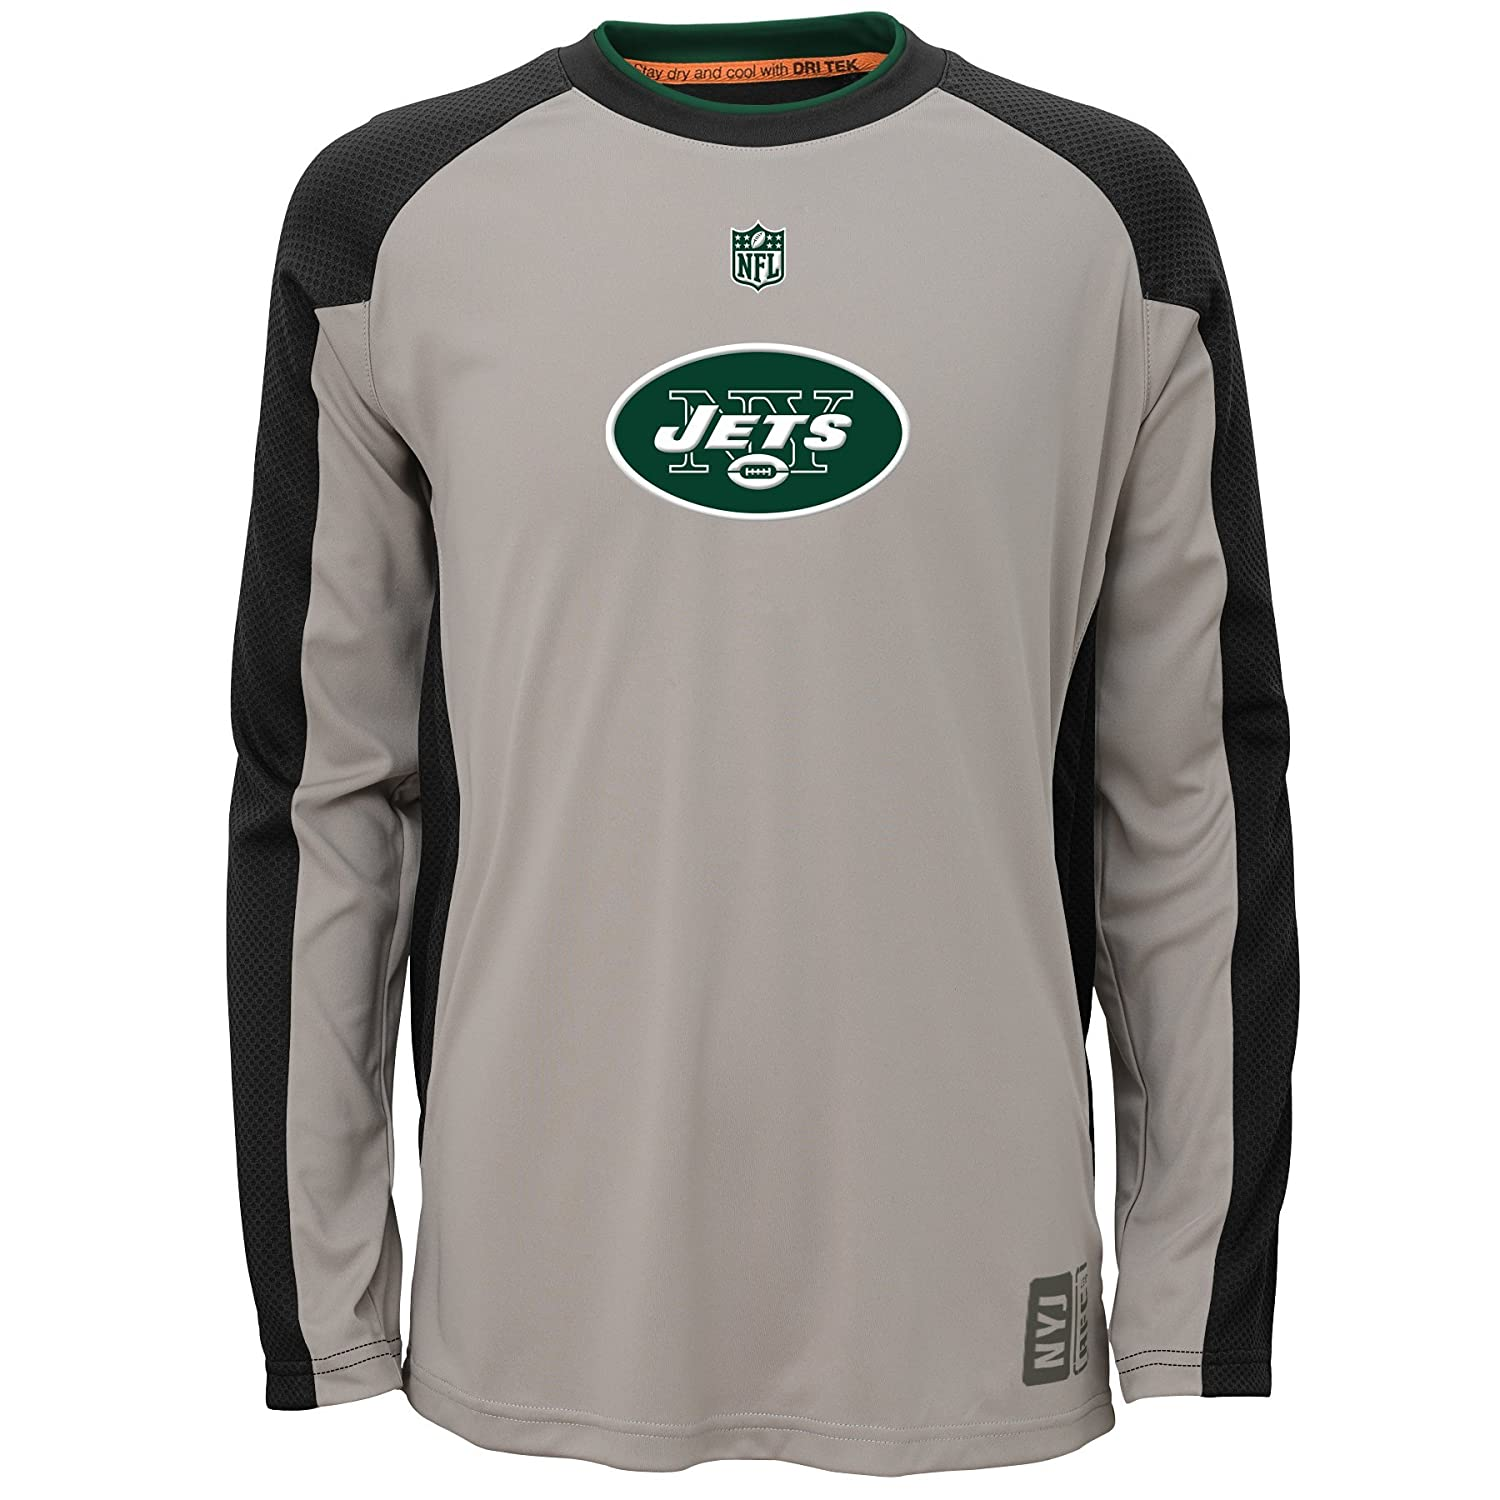 673133306 Amazon.com: Outerstuff NFL Youth Boys 8-20 Covert Long Sleeve Top: Sports &  Outdoors